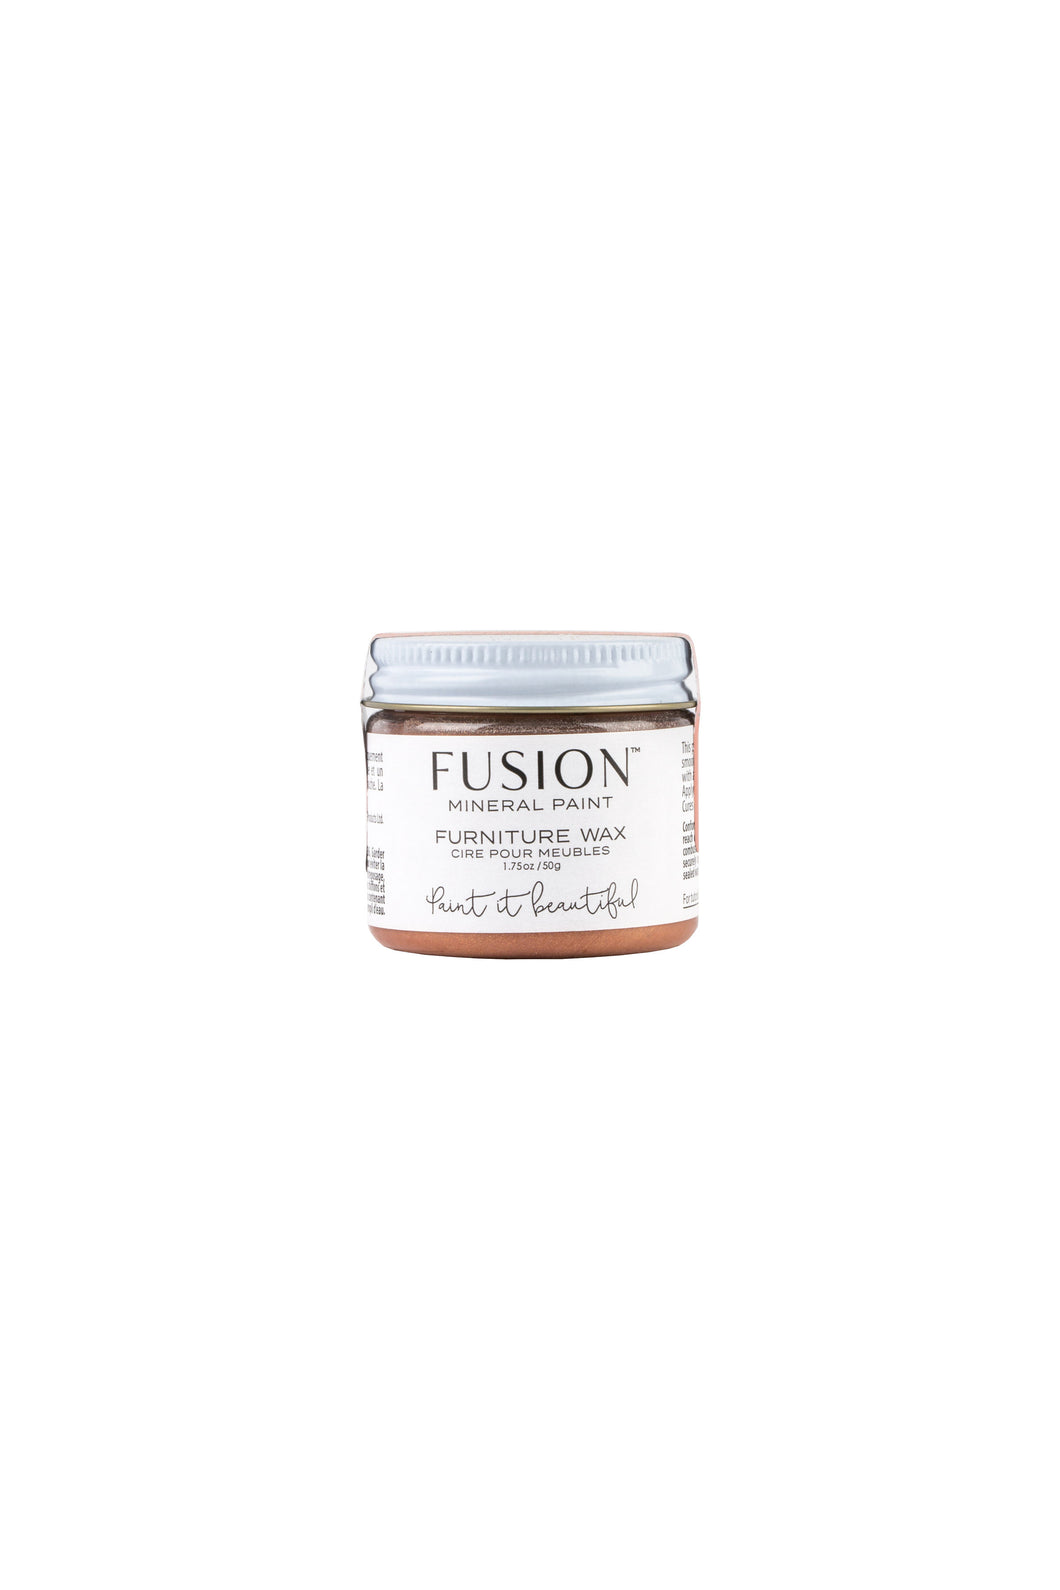 Fusion Furniture Wax | Copper | 50g